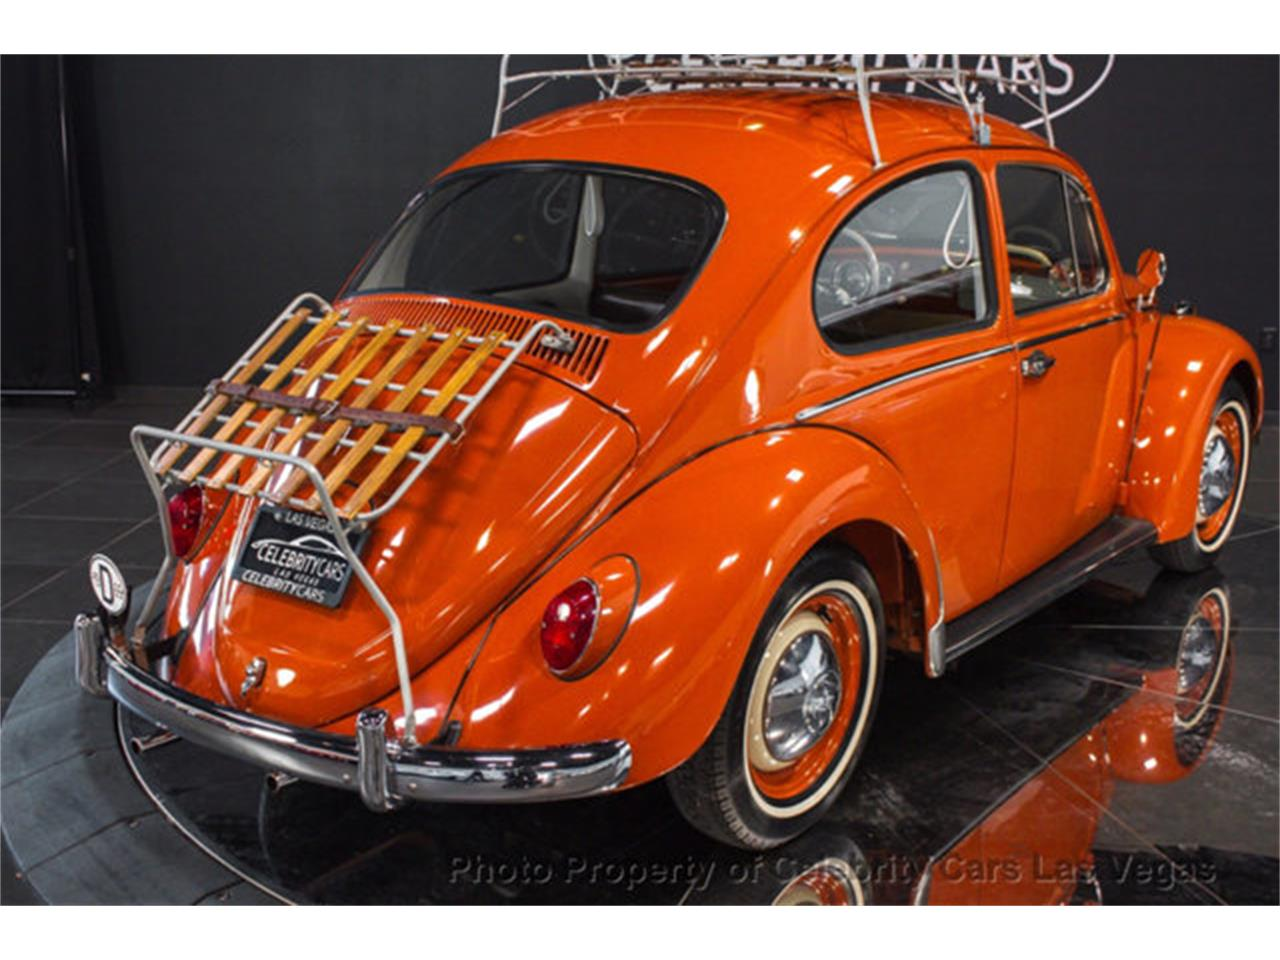 Large Picture of '65 Volkswagen Beetle located in Nevada - $23,500.00 Offered by Celebrity Cars Las Vegas - LPJ7